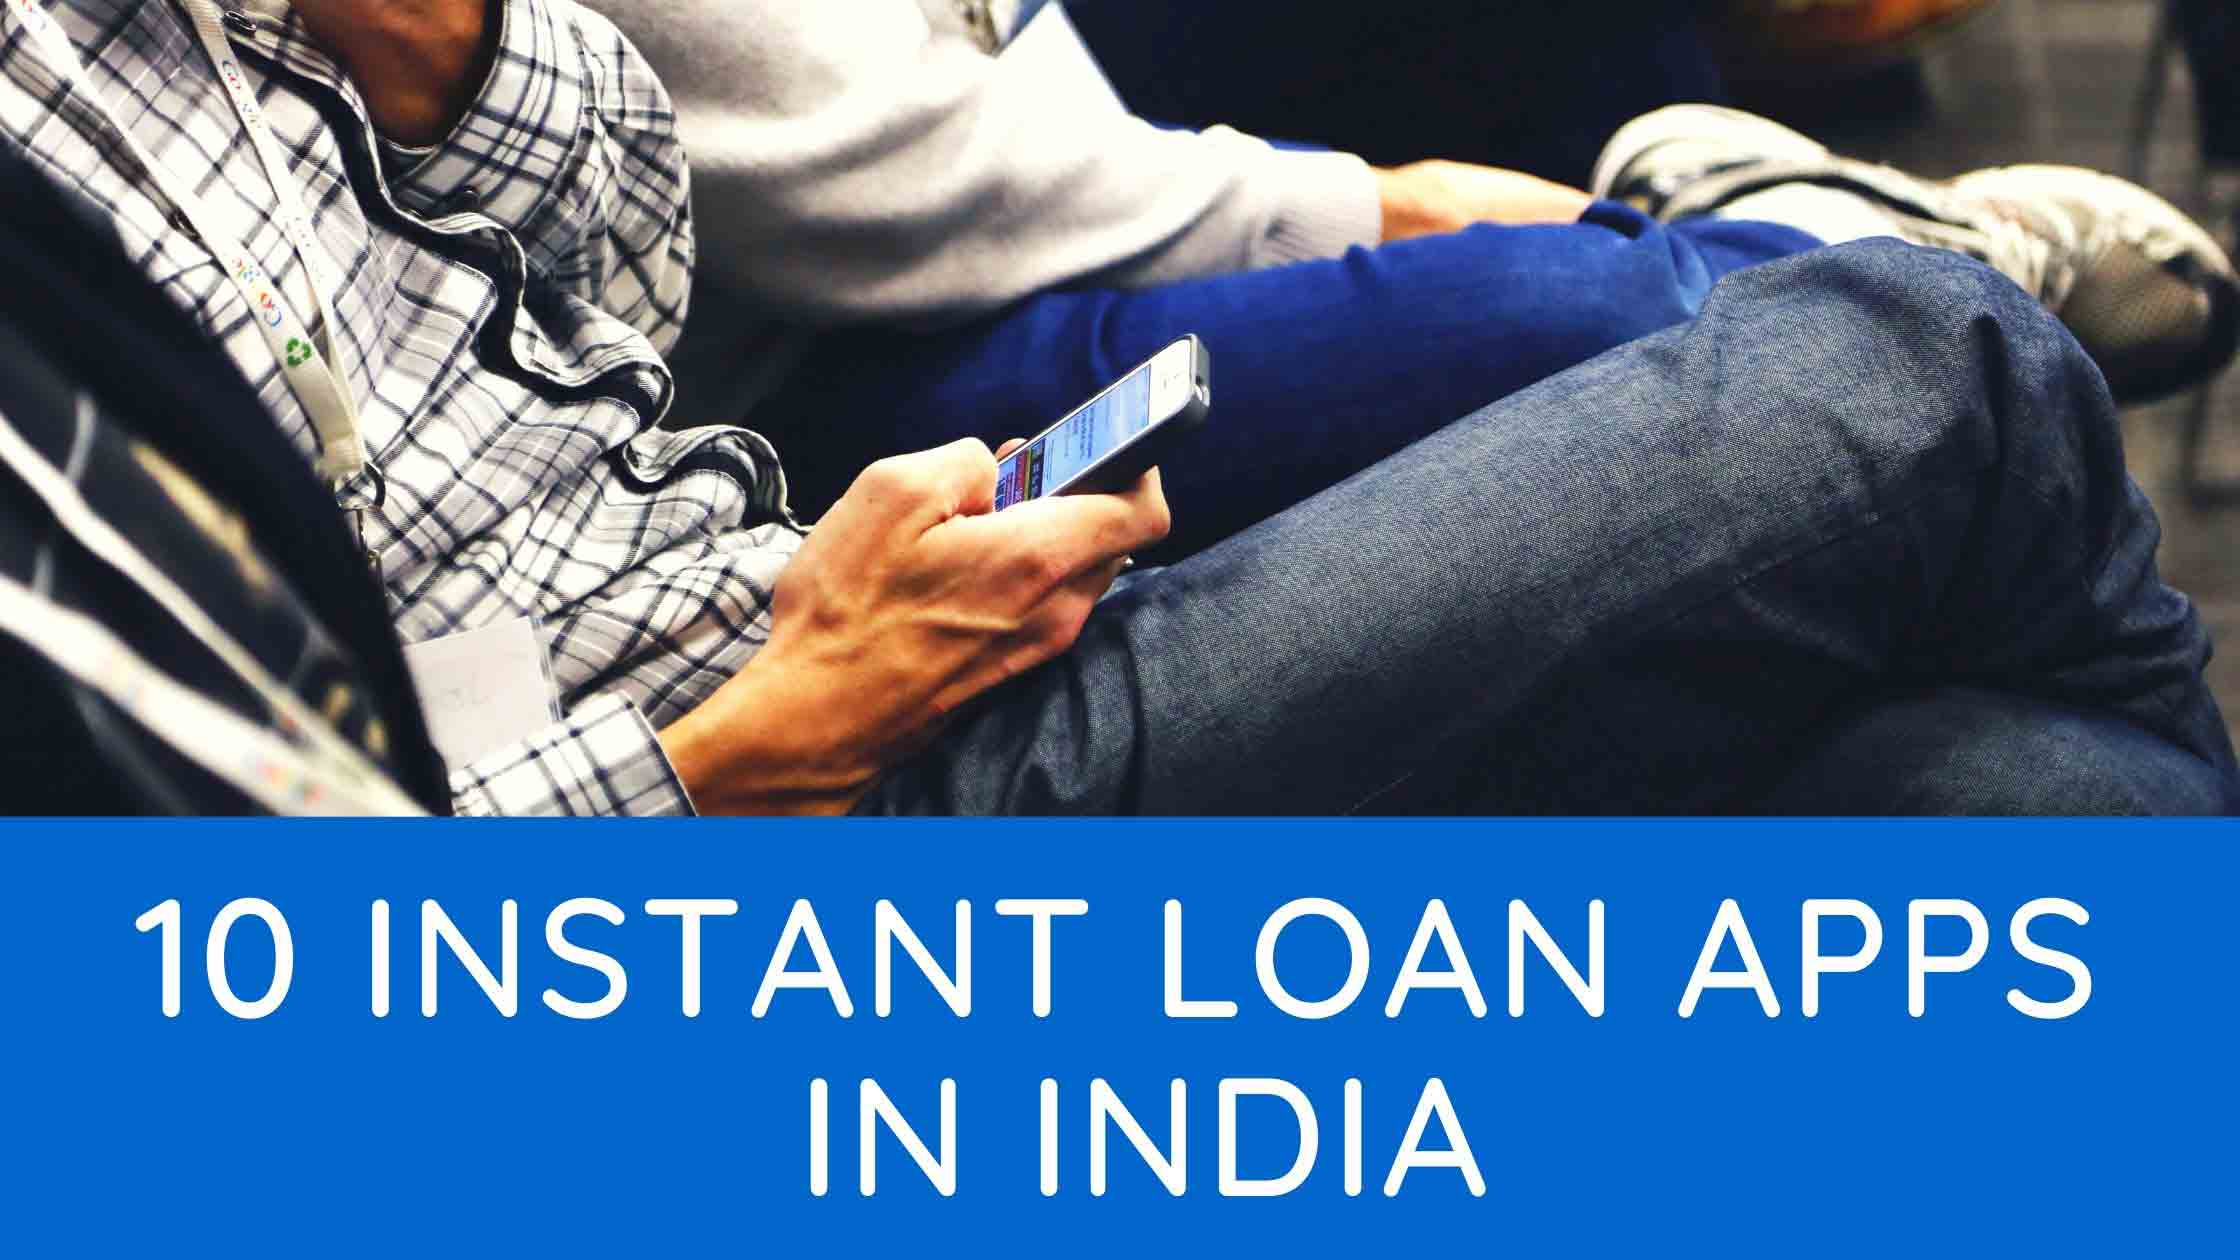 10 Best Instant Loan Apps in India of 2021